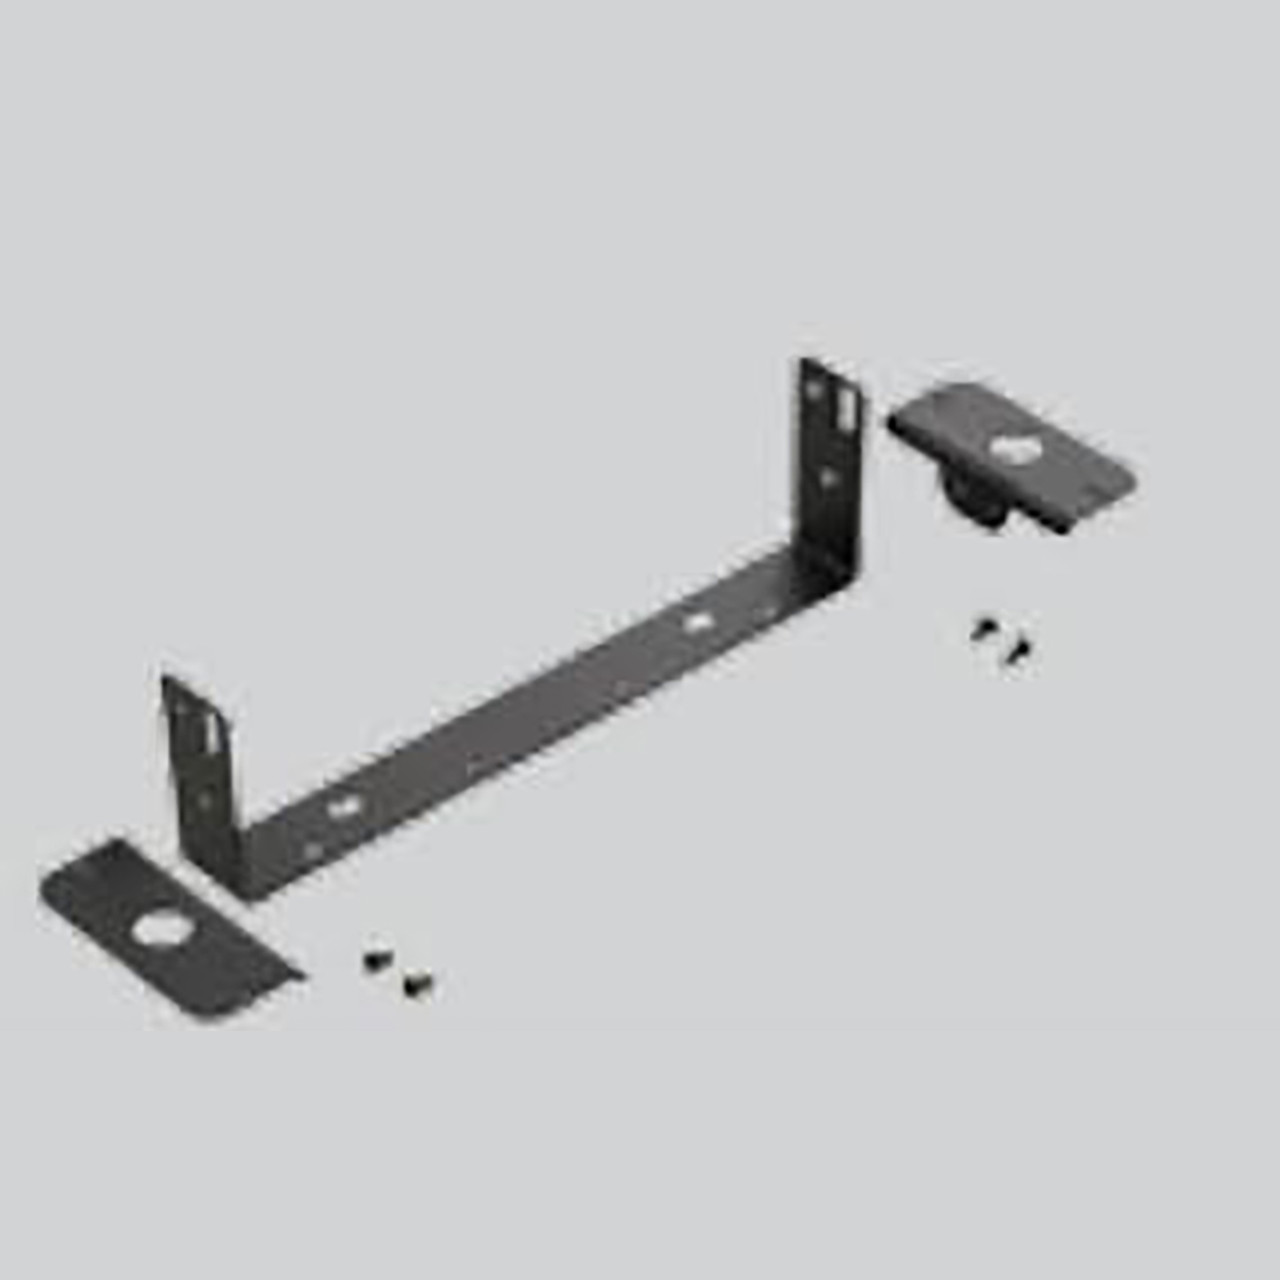 Federal Signal Extended License Plate Bracket For IPX3/ IPX6/ VPX8, kit